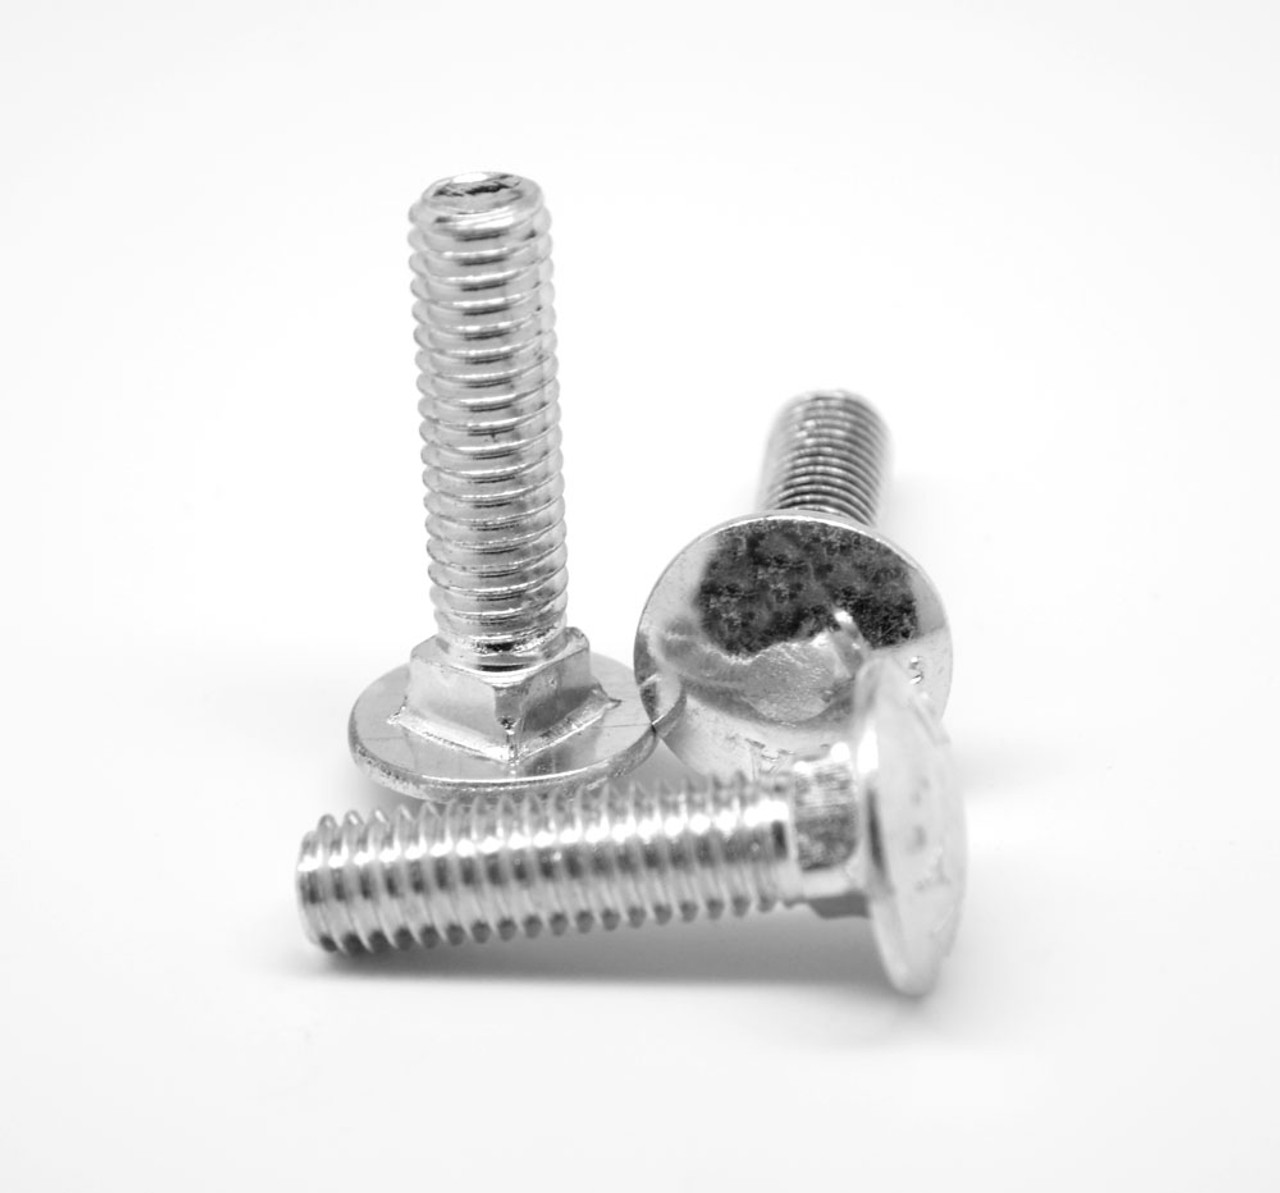 #10-24 x 3/4 (FT) Coarse Thread Carriage Bolt Stainless Steel 18-8